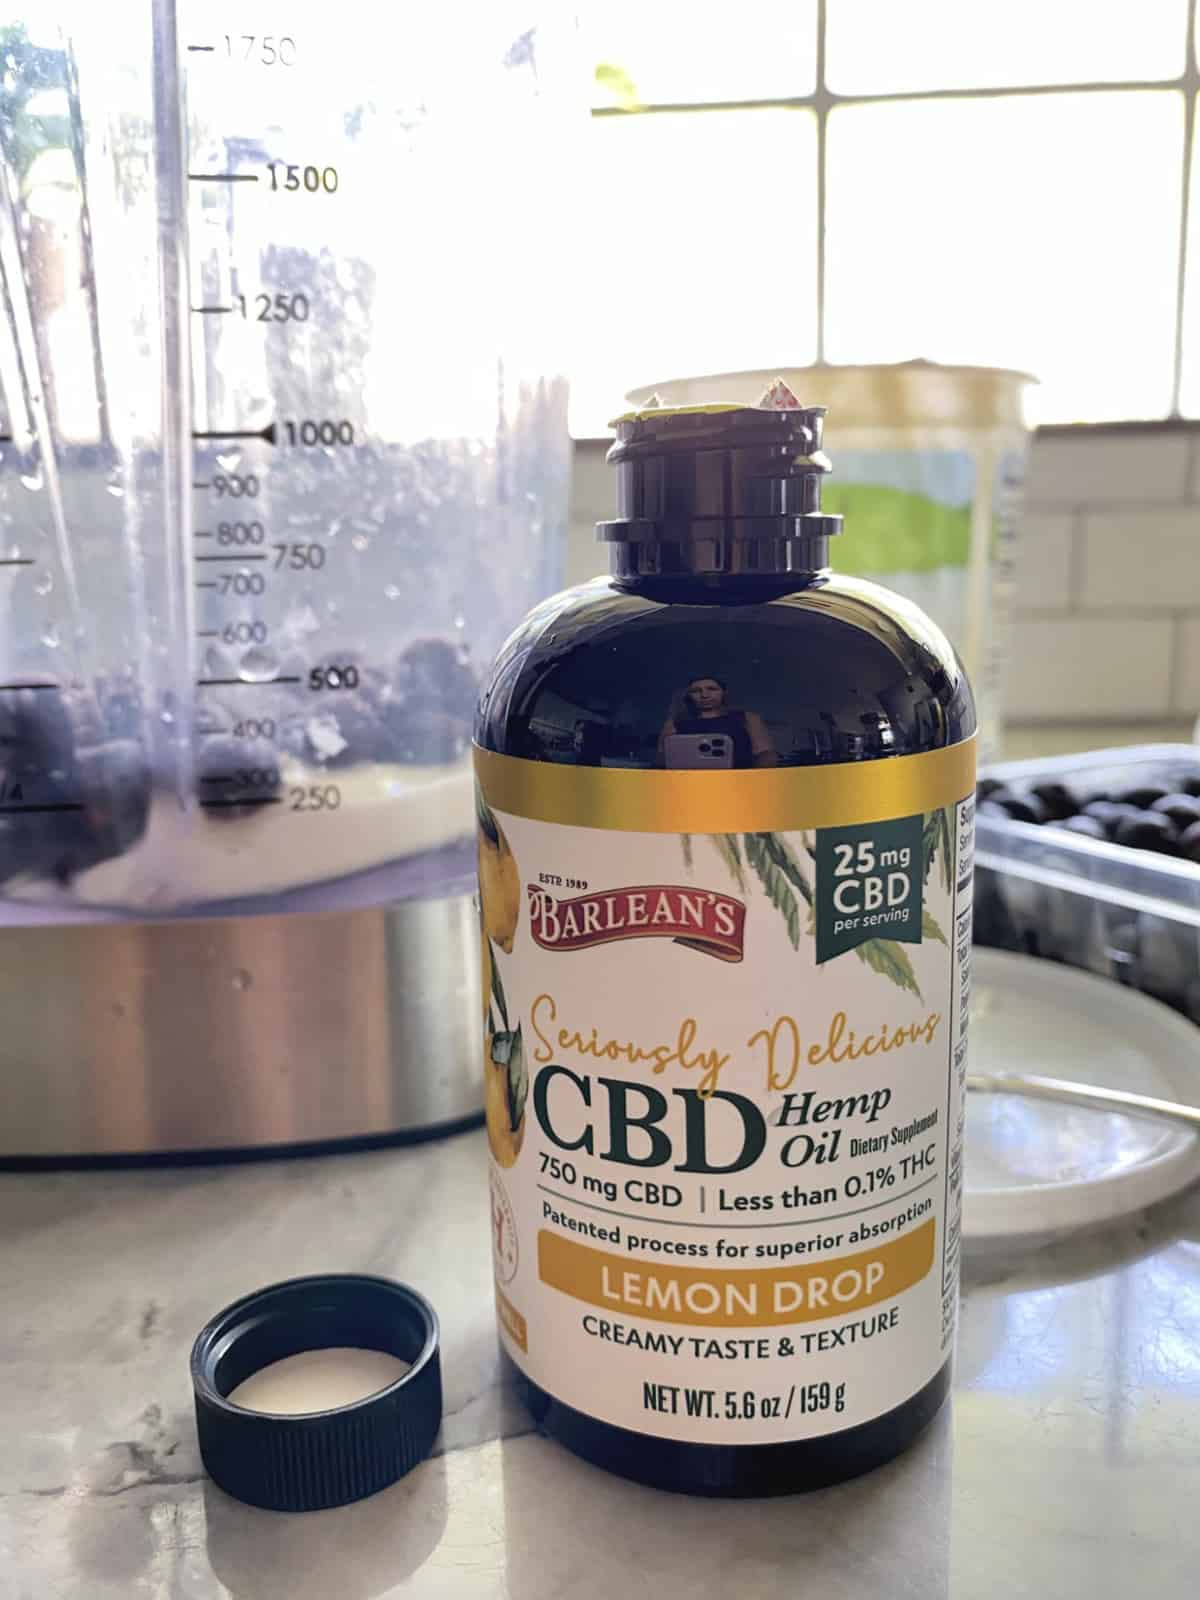 Barleans Seriously Delicious CBD Lemon Drop bottle of 750 mg CBD on countertop.